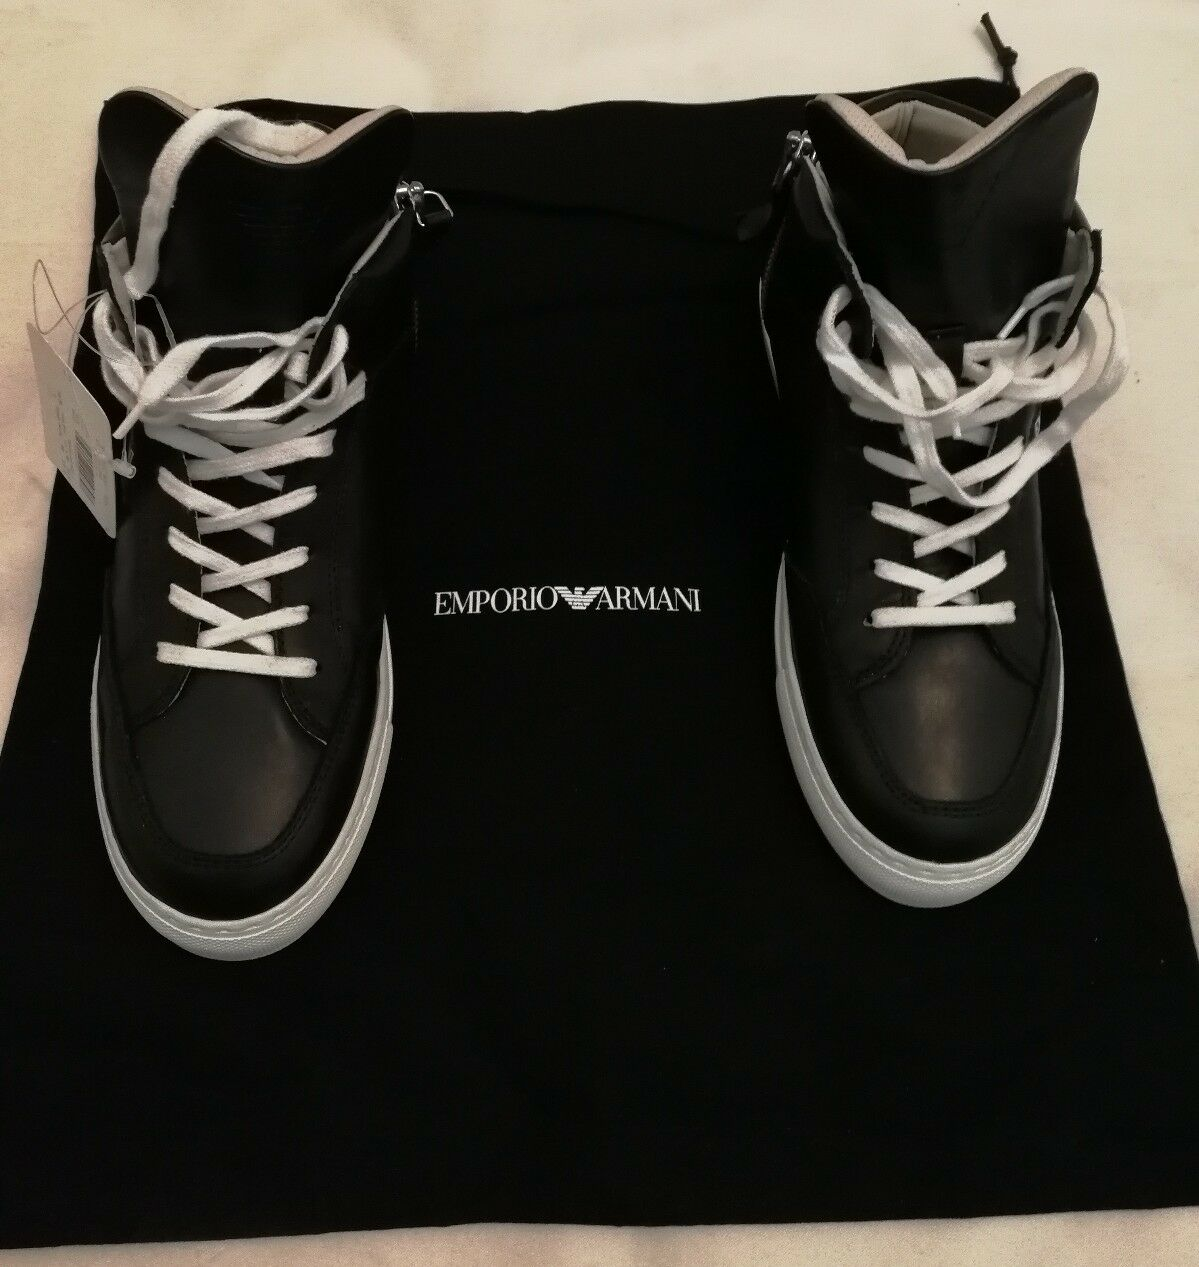 EMPORIO ARMANI K4Z026 Hi top Leather Lace-up Sneakers Shoes Black uk 5.5